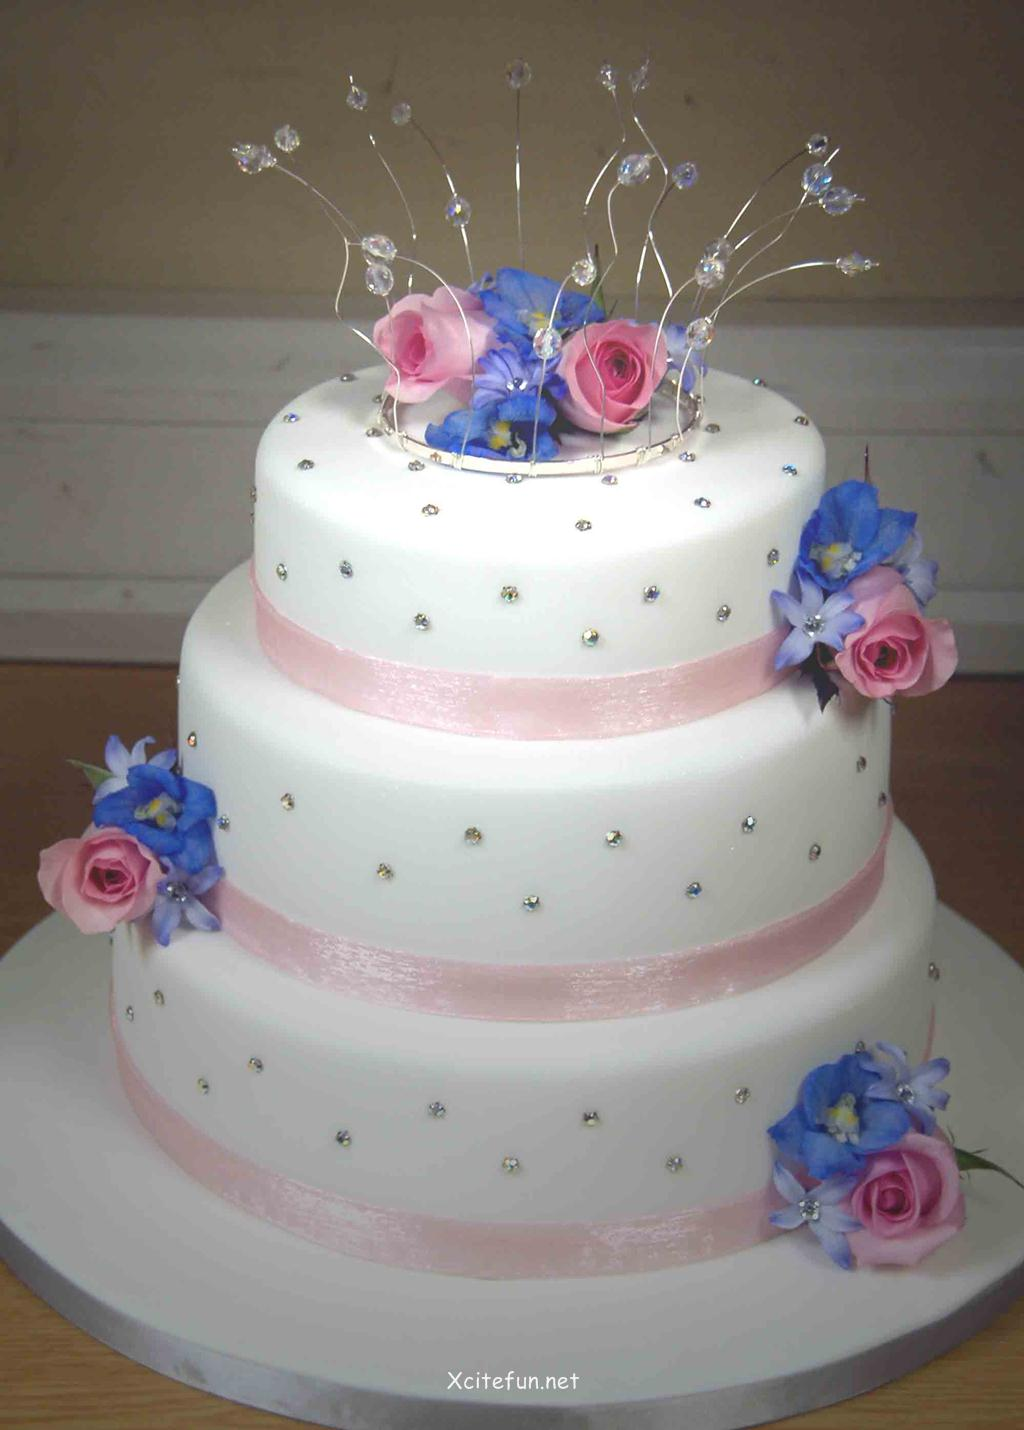 Wedding Cake Recipes And Decorating Ideas : Wedding Cakes - Decorating Ideas - XciteFun.net